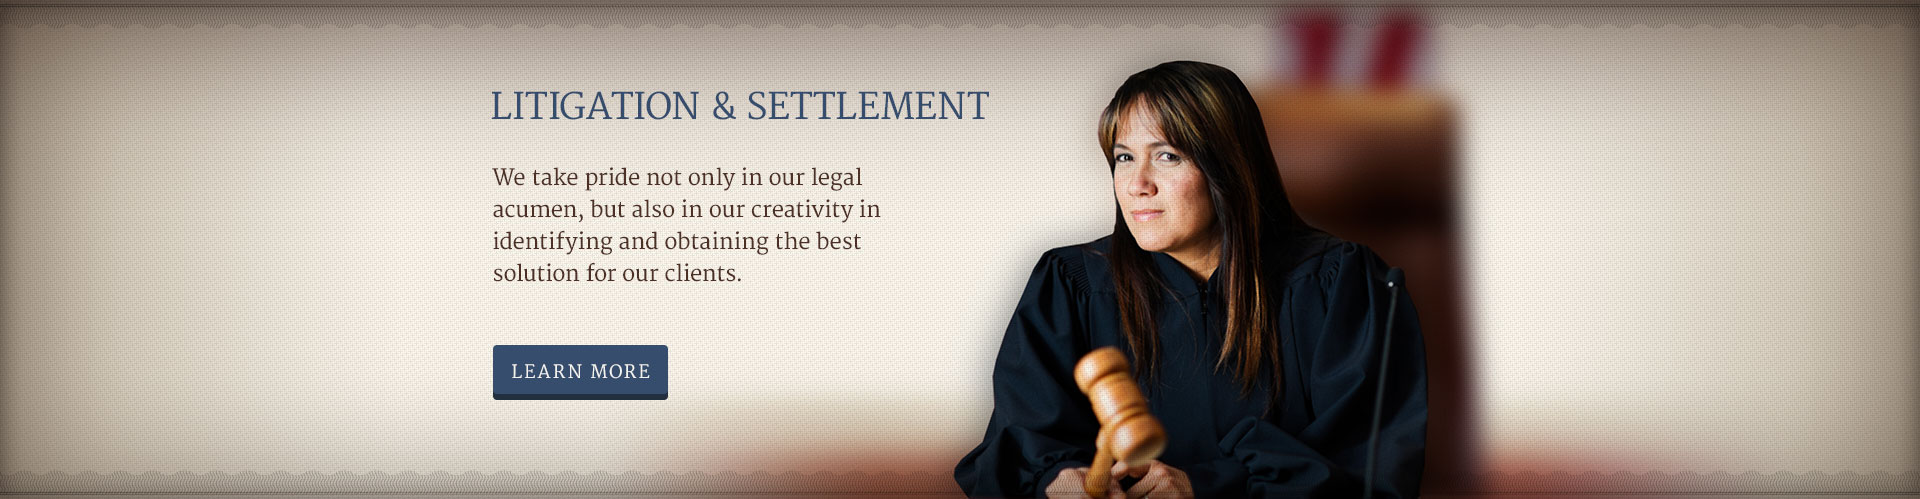 LITIGATION & SETTLEMENT - We take pride not only in our legal acumen, but also in our creativity in identifying and obtaining the best solution for our clients.